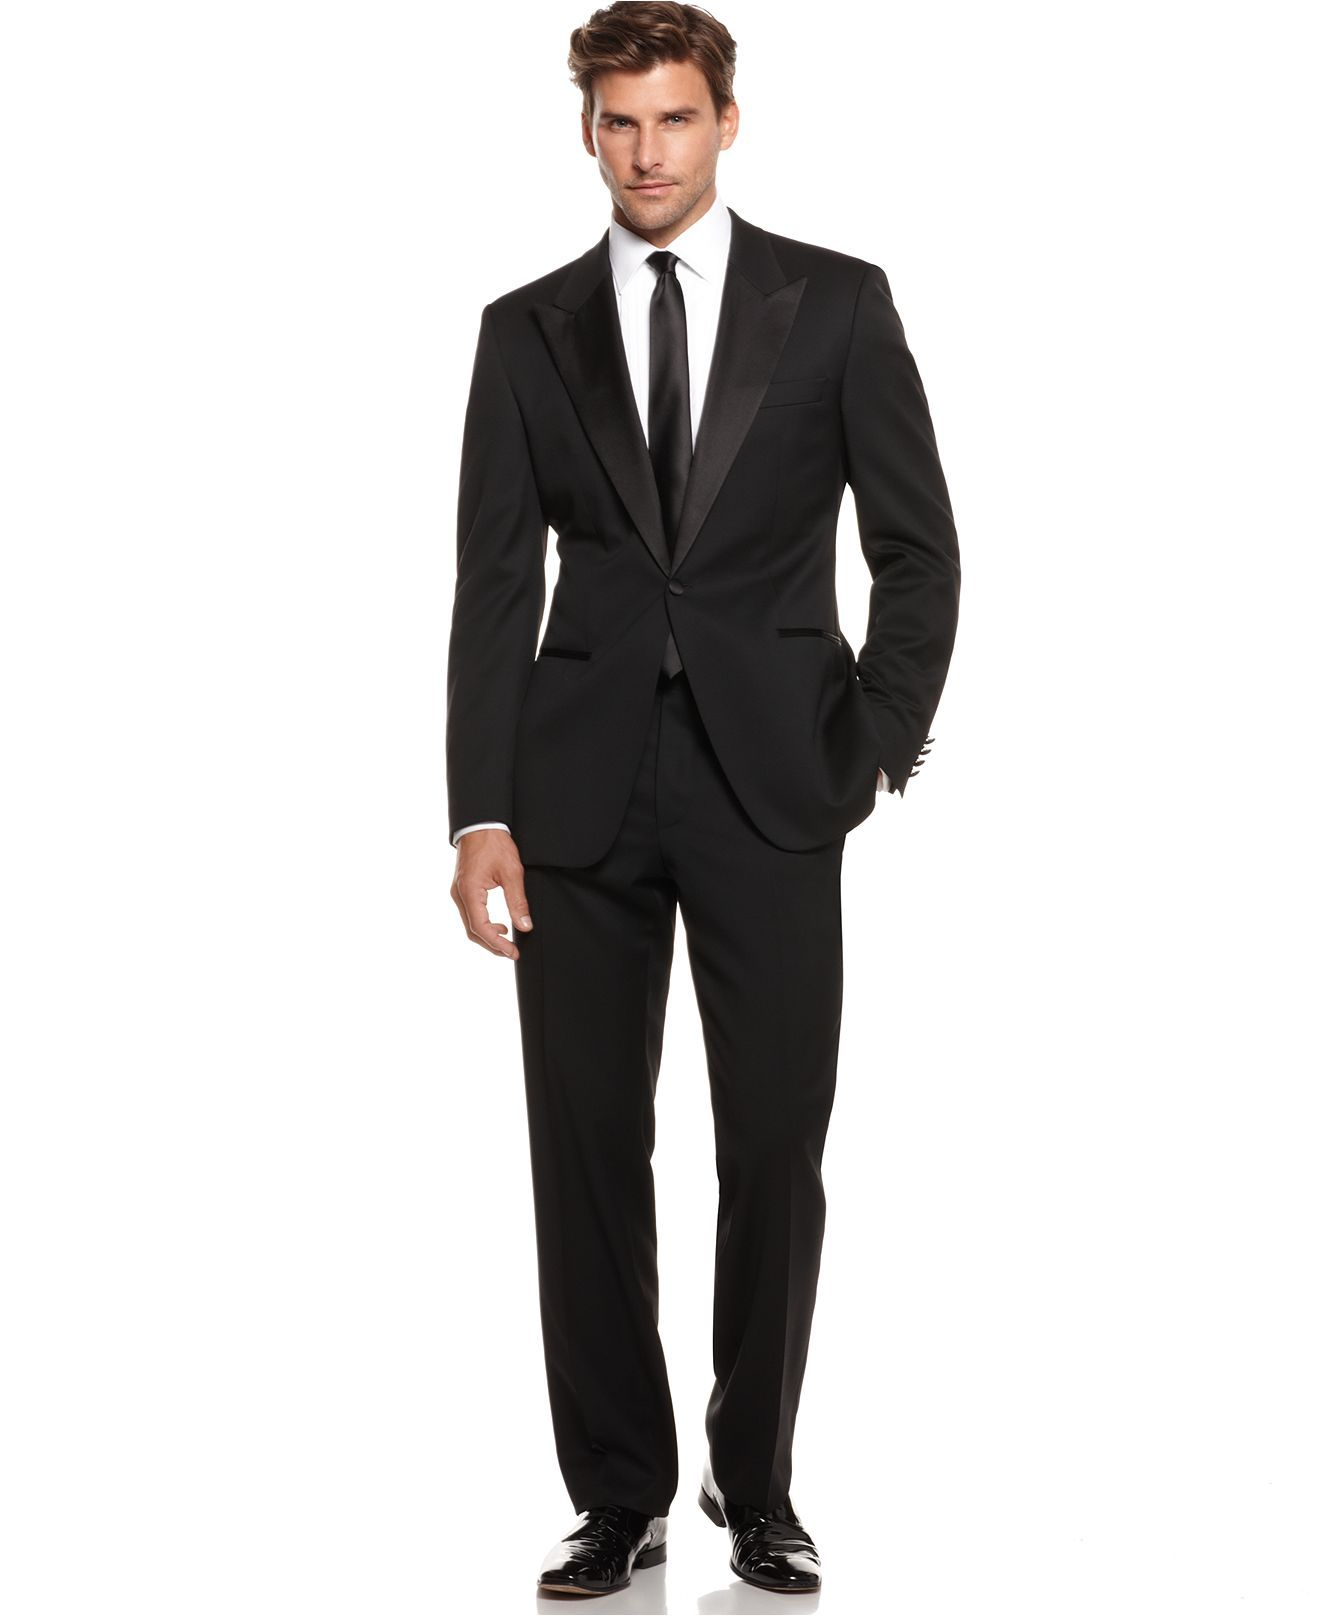 0272857a7 BOSS by Hugo Boss Tuxedo, Cary Grant Black - Suits & Suit Separates - Men -  Macy's